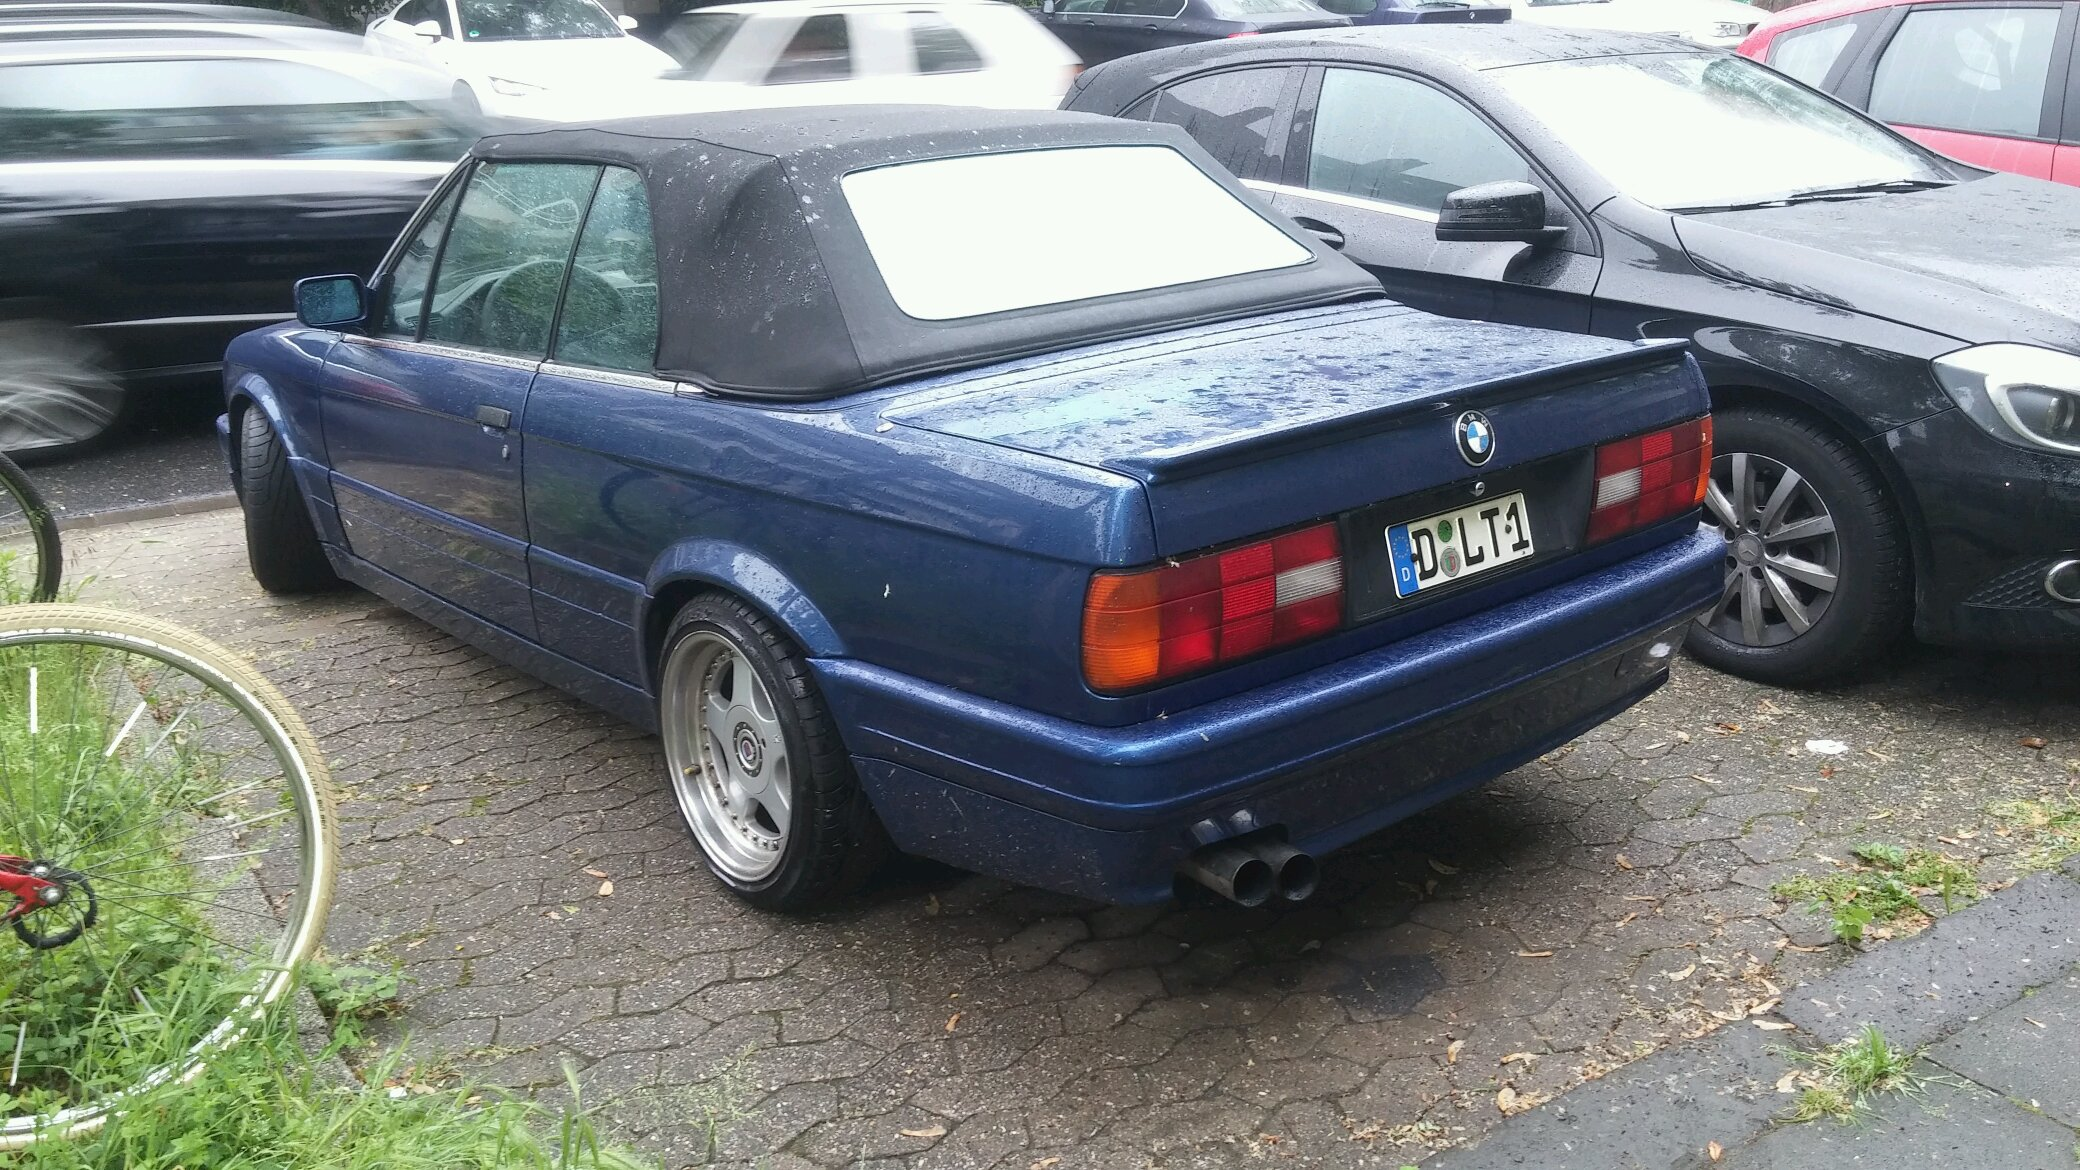 Cool BMW E With Alpina Rims I Spotted Today - Alpina rims bmw